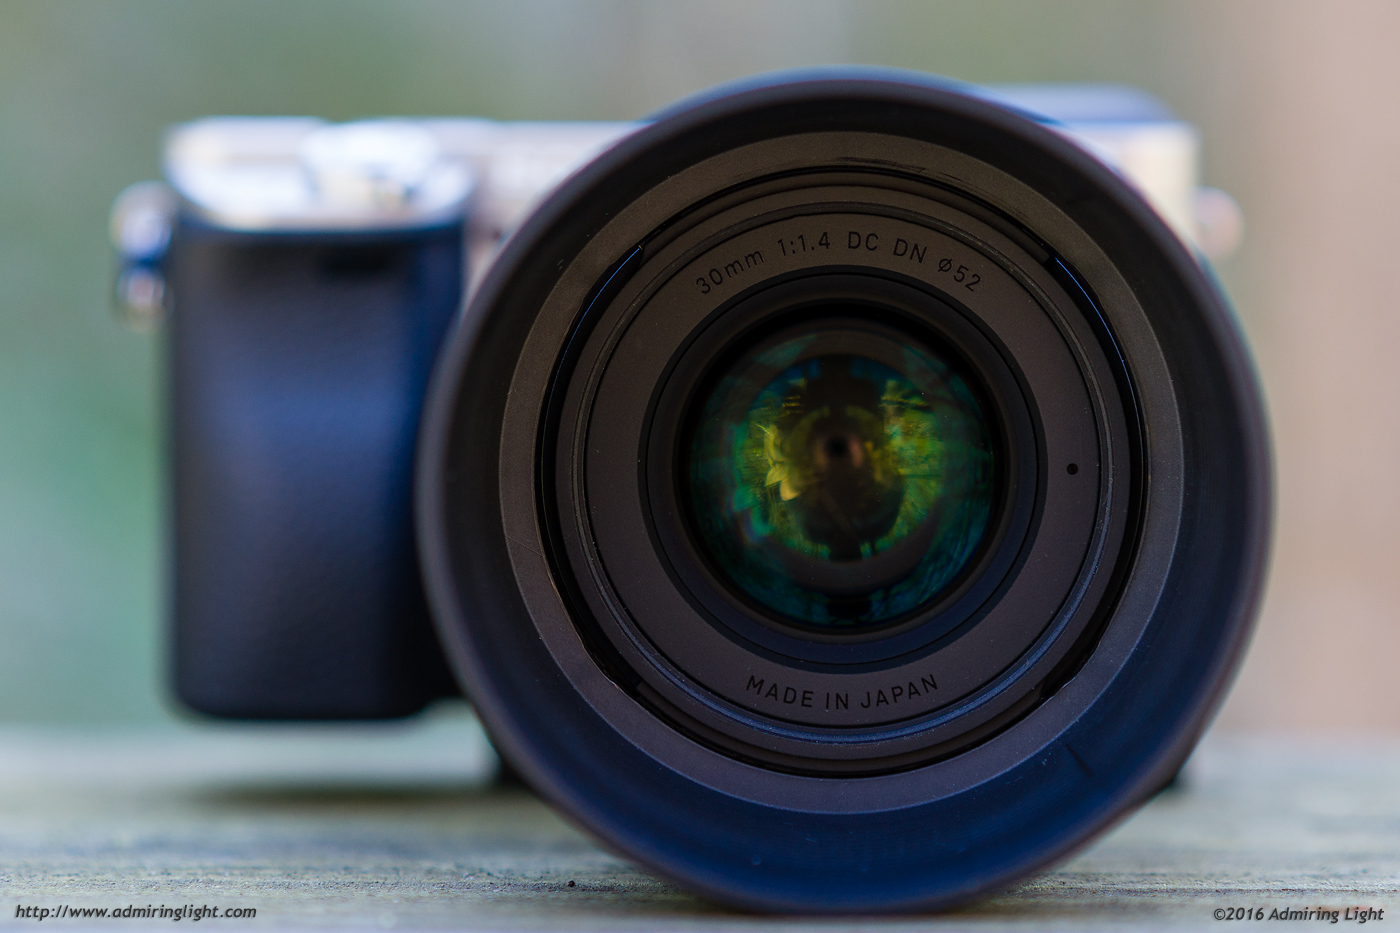 The Sigma 30mm f/1.4 DC DN is one of the fastest AF lenses for Sony E-Mount